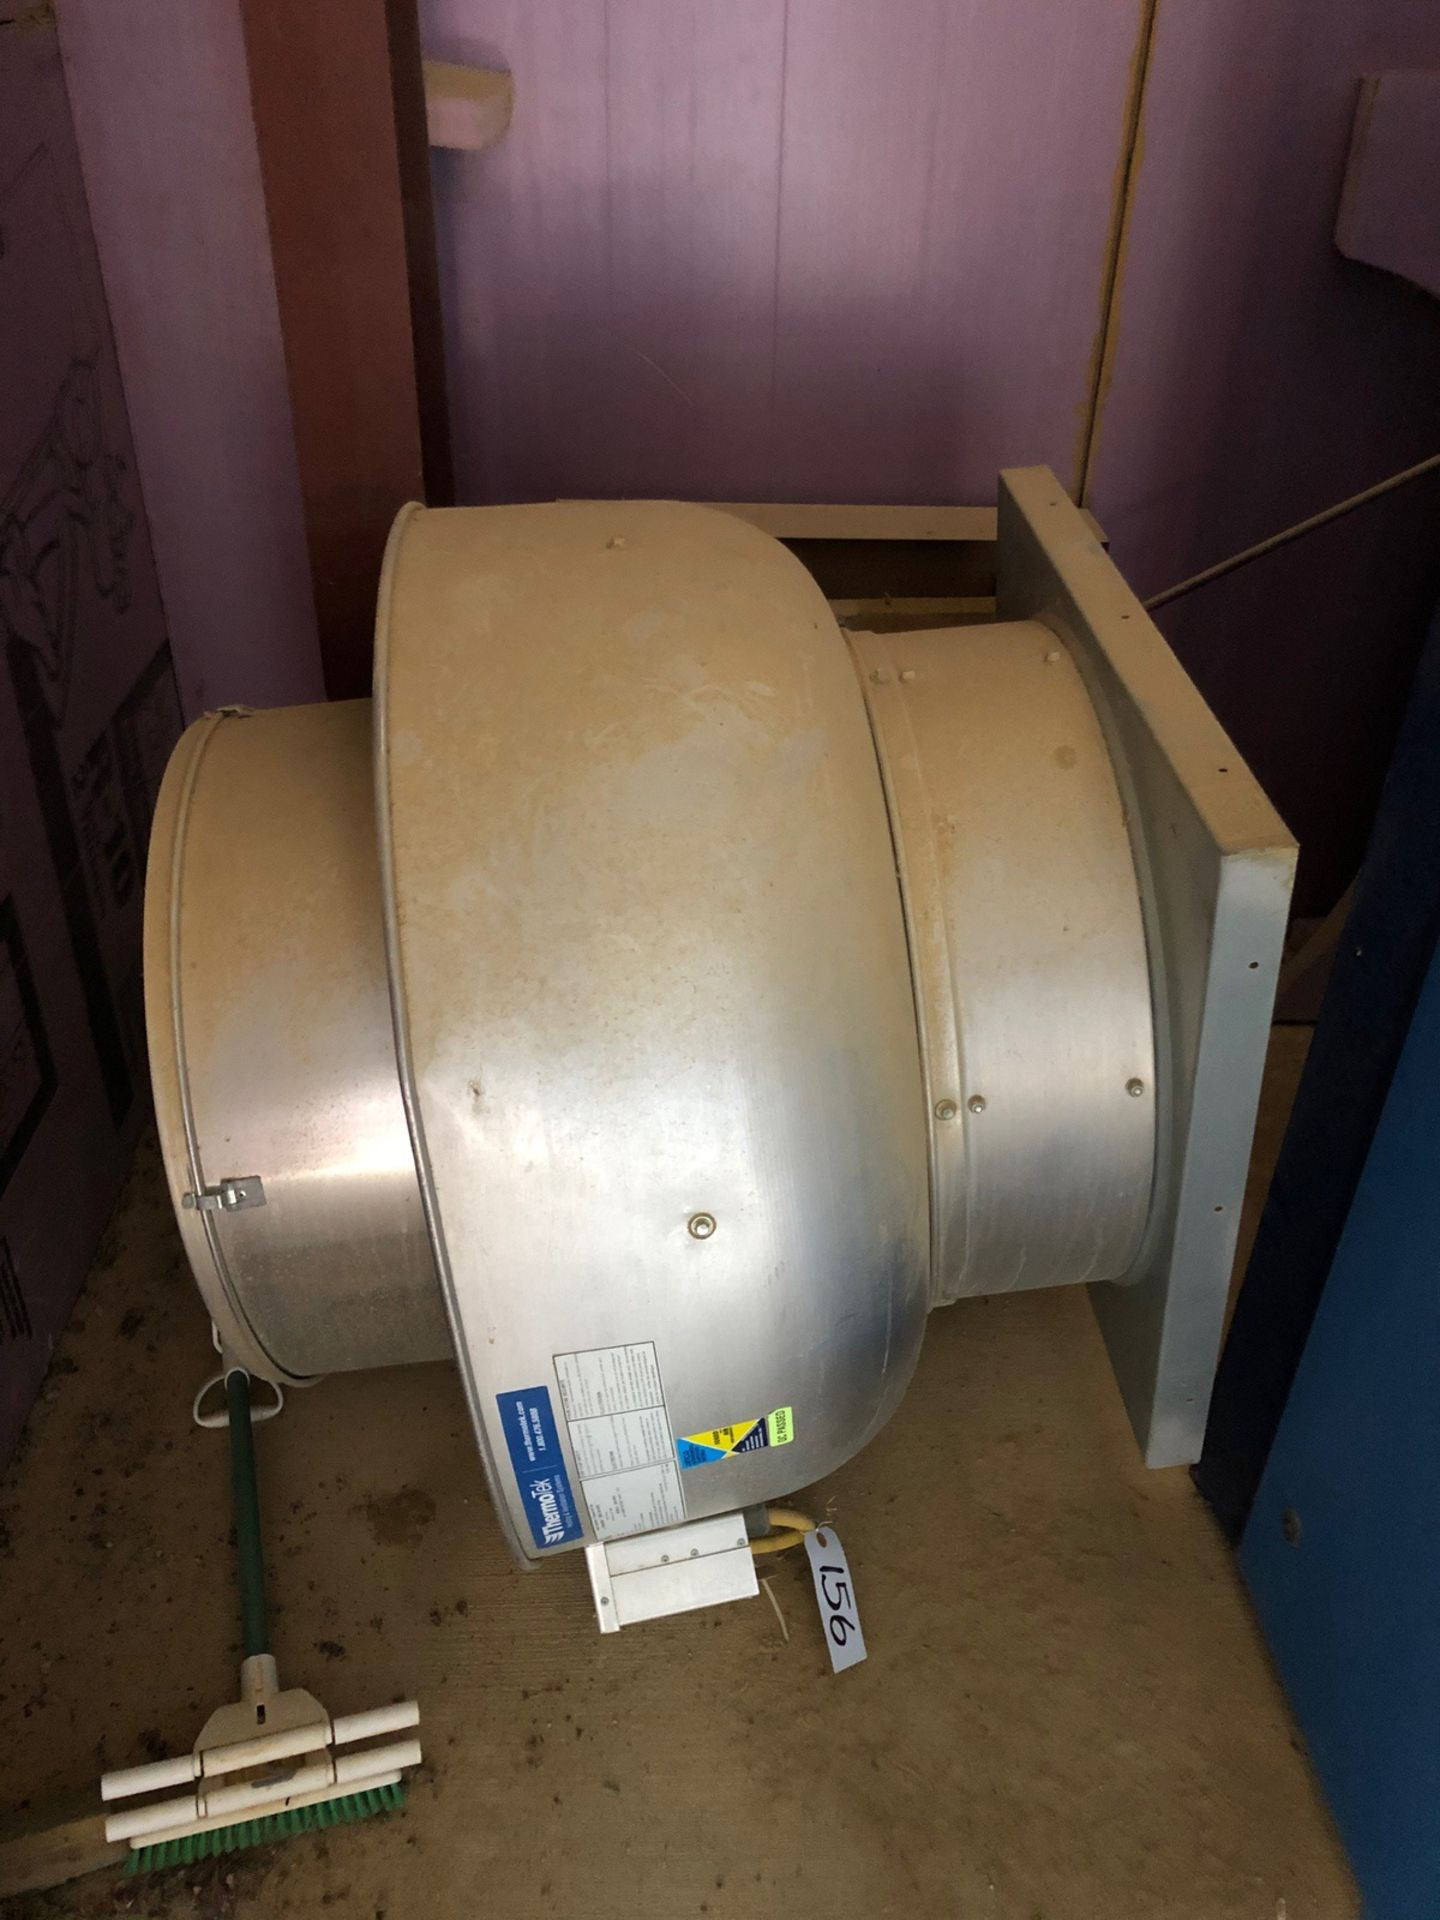 ThermoTek Exhaust fan; model #BDU18TH (In compressor Shed) - Subj to Bulk